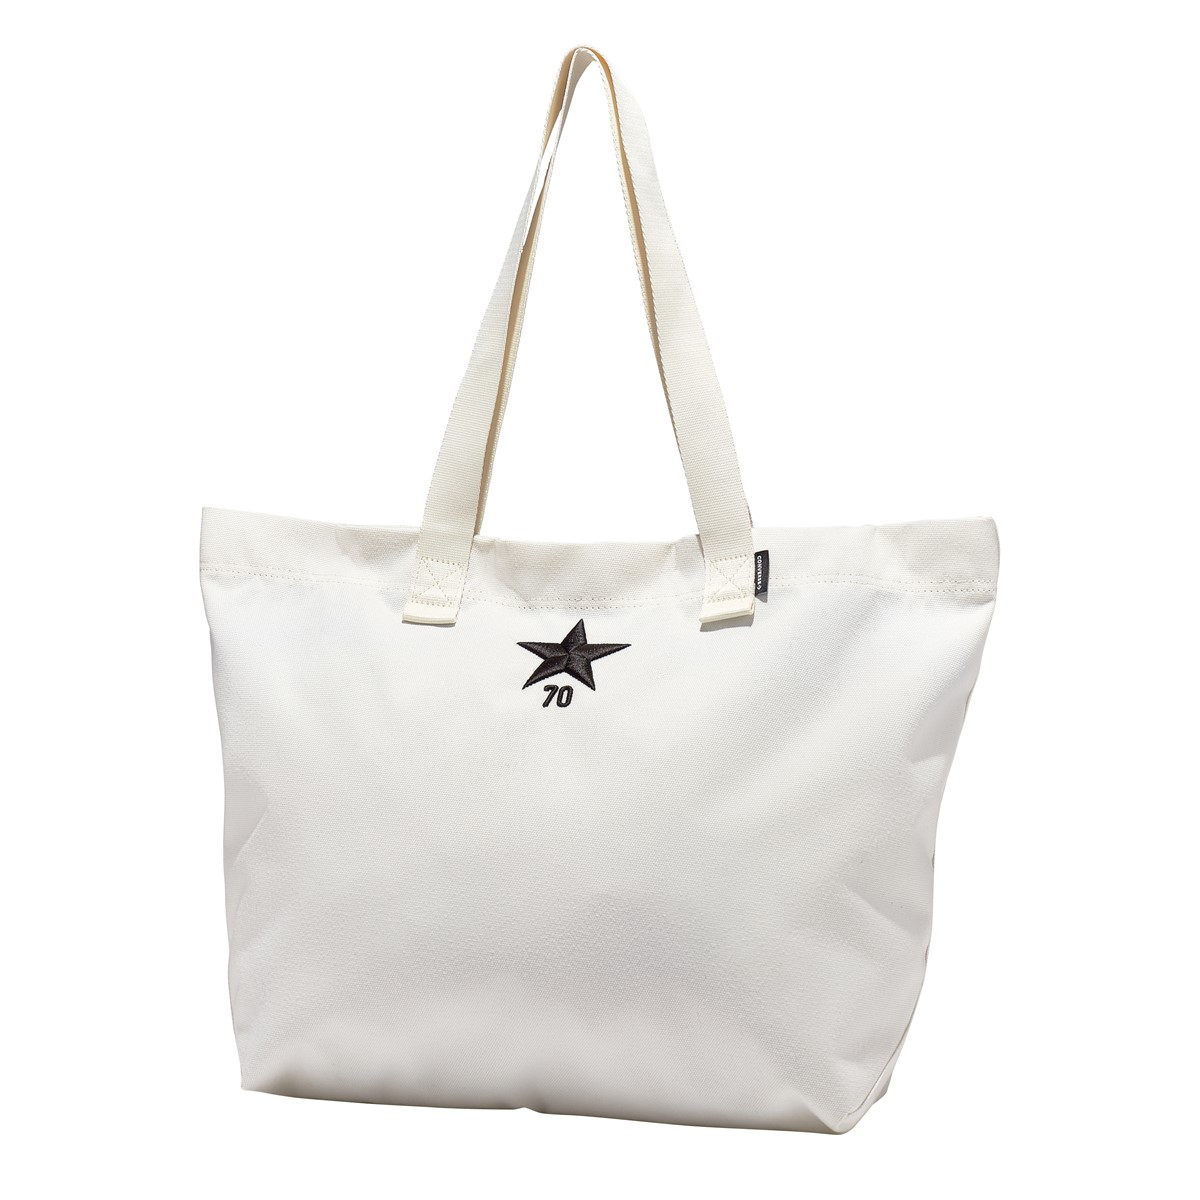 Converse 70 Tote Bag in White